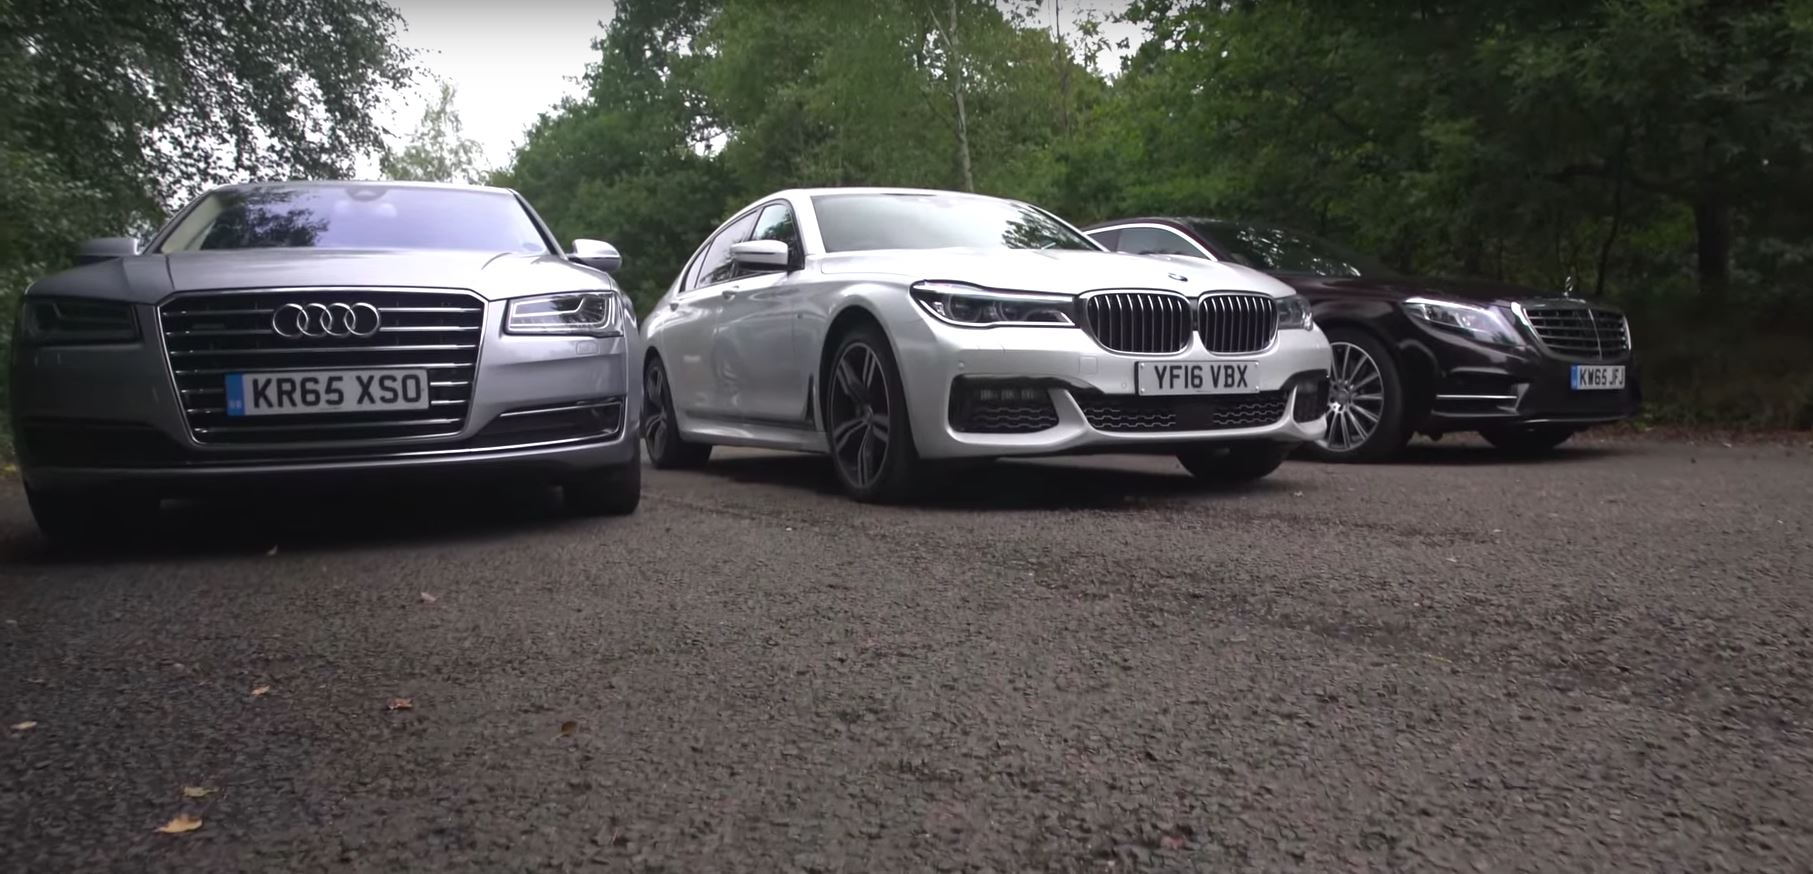 BMW 7 Series Vs Mercedes S Class Audi A8 2017 Luxury Limo Test Has UK Twist